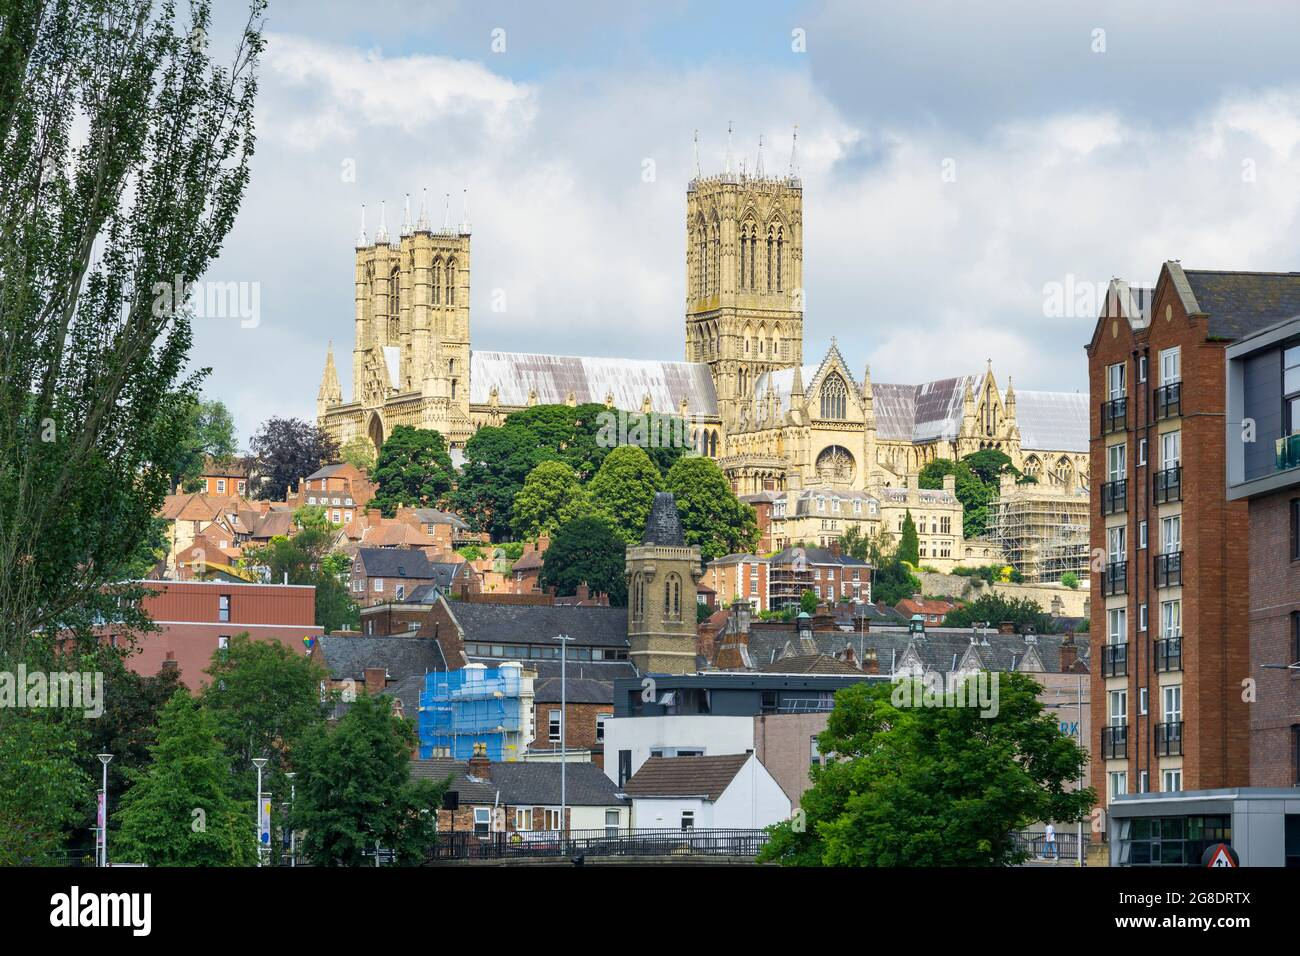 lincoln-cathedral-from-brayford-south-side-2G8DRTX.jpg